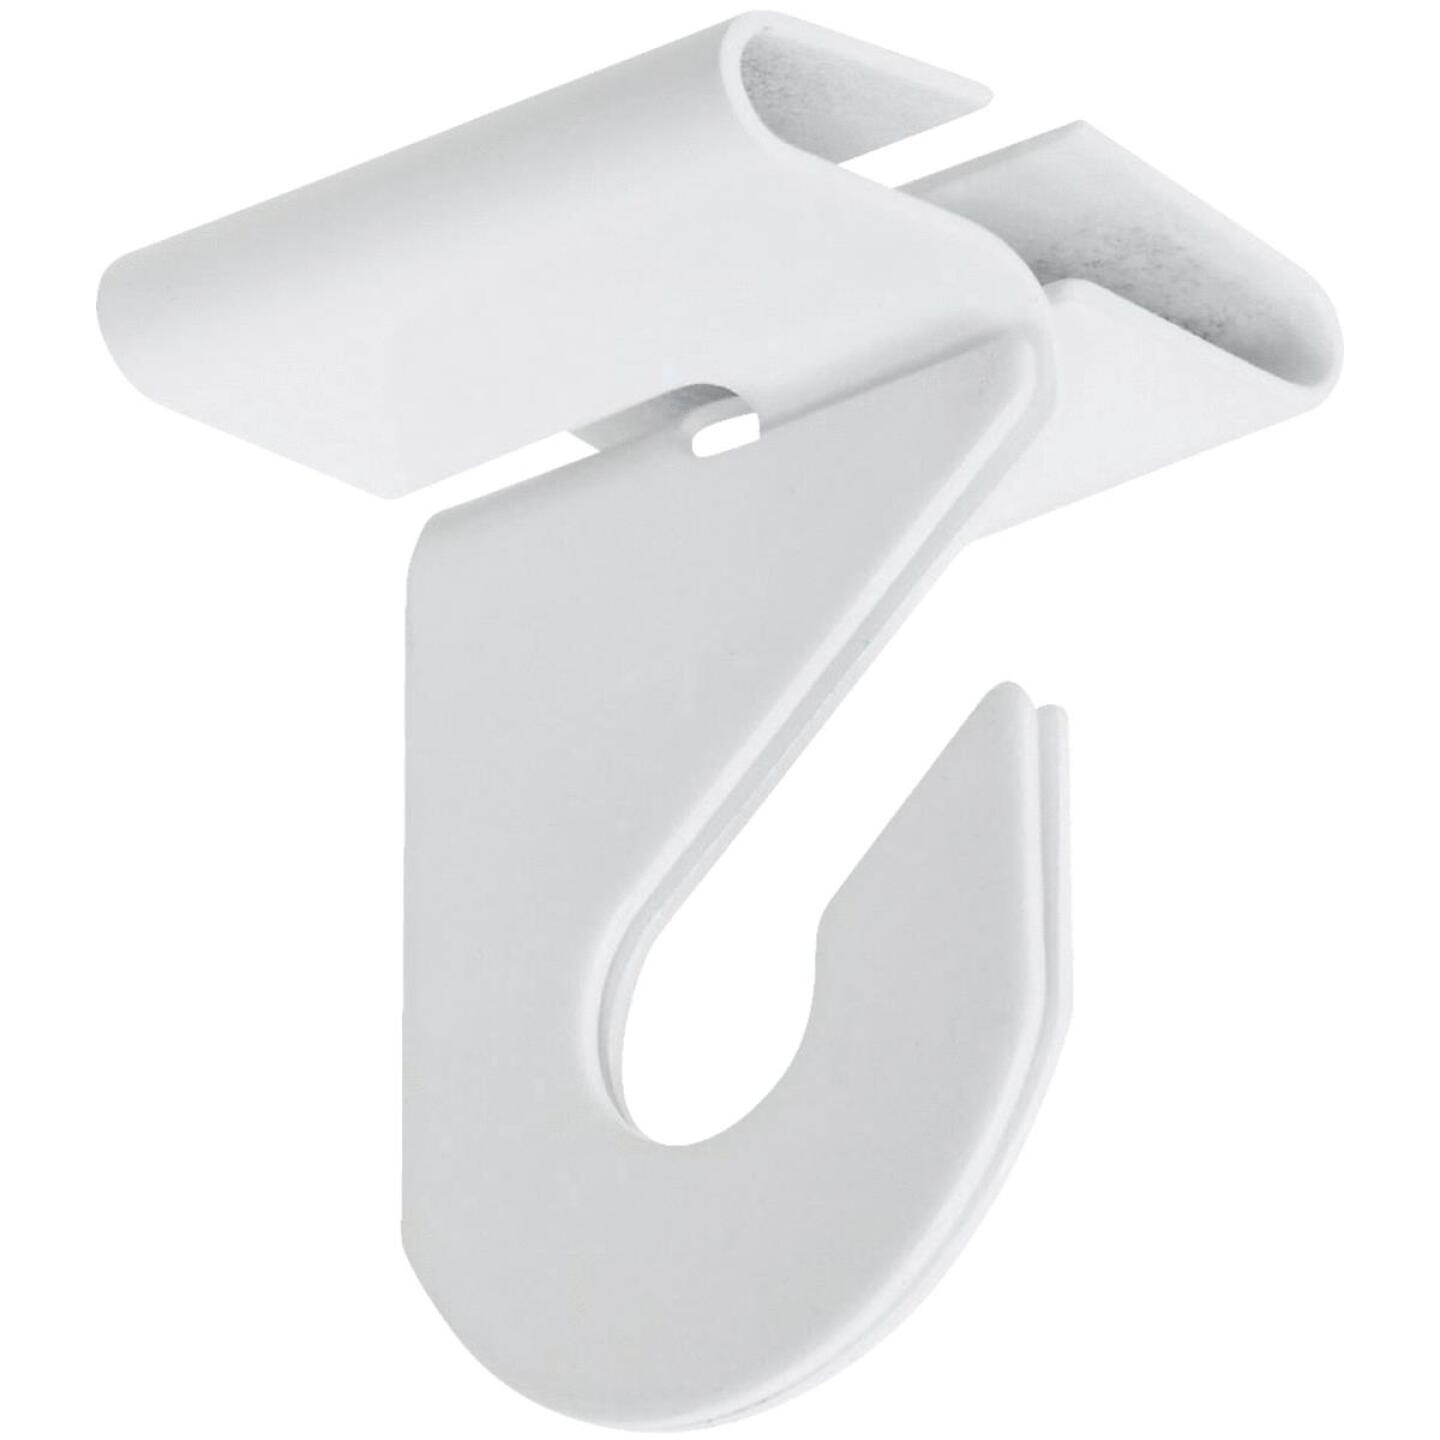 National White Suspended Ceiling Hook (2 Pack) Image 1